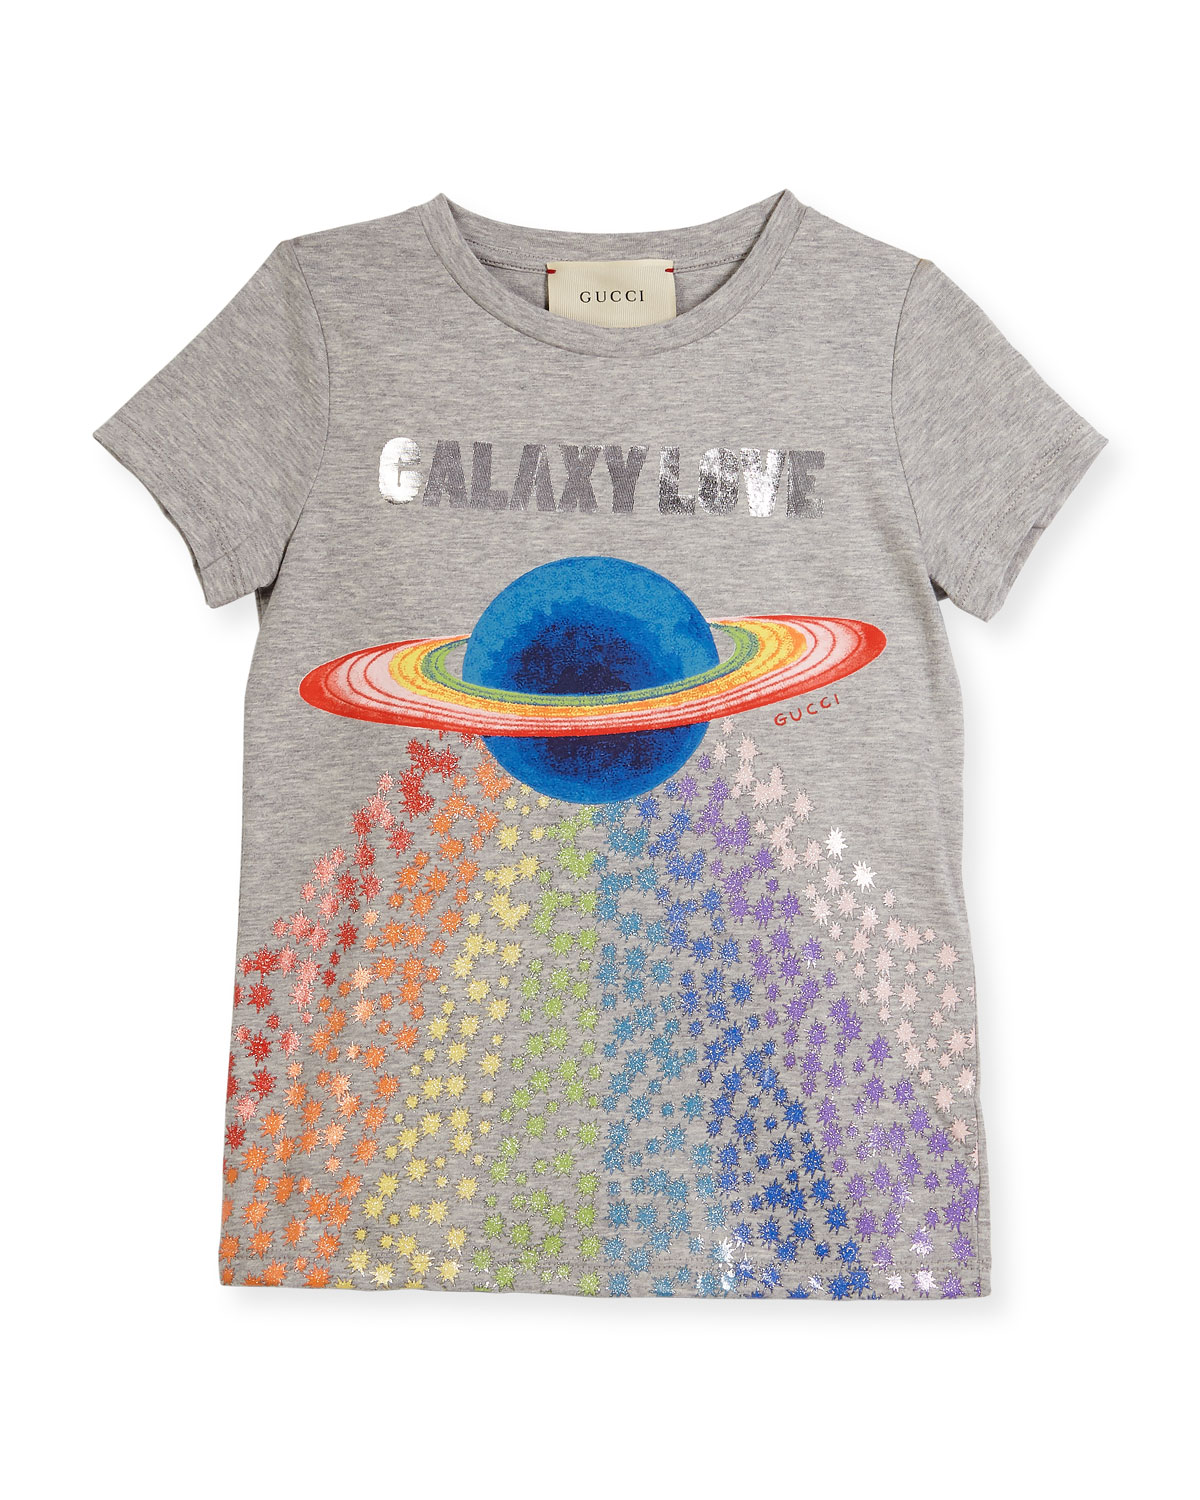 cd7acc74 Gucci Galaxy Love Short-Sleeve T-Shirt, Size 4-12 | Neiman Marcus